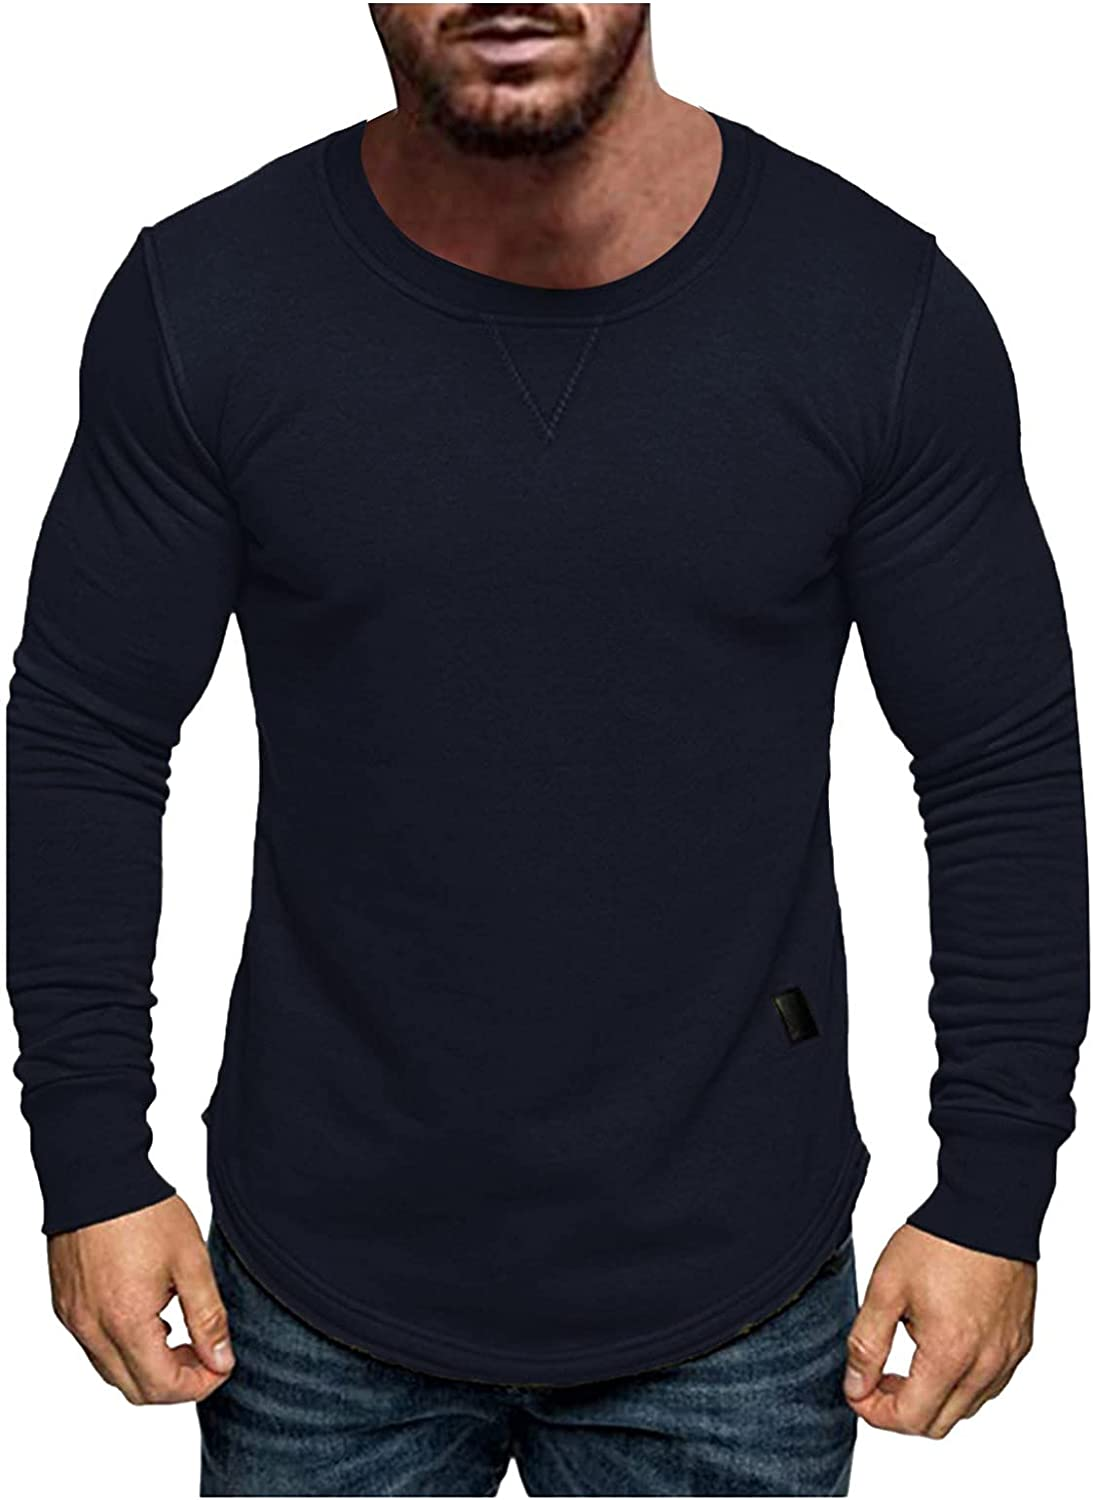 Mens Muscle Shirts Long Sleeve Round Neck Pullover Tops Lightweight Sun Protection Shirt Workout Athletic Quick-Dry Tee